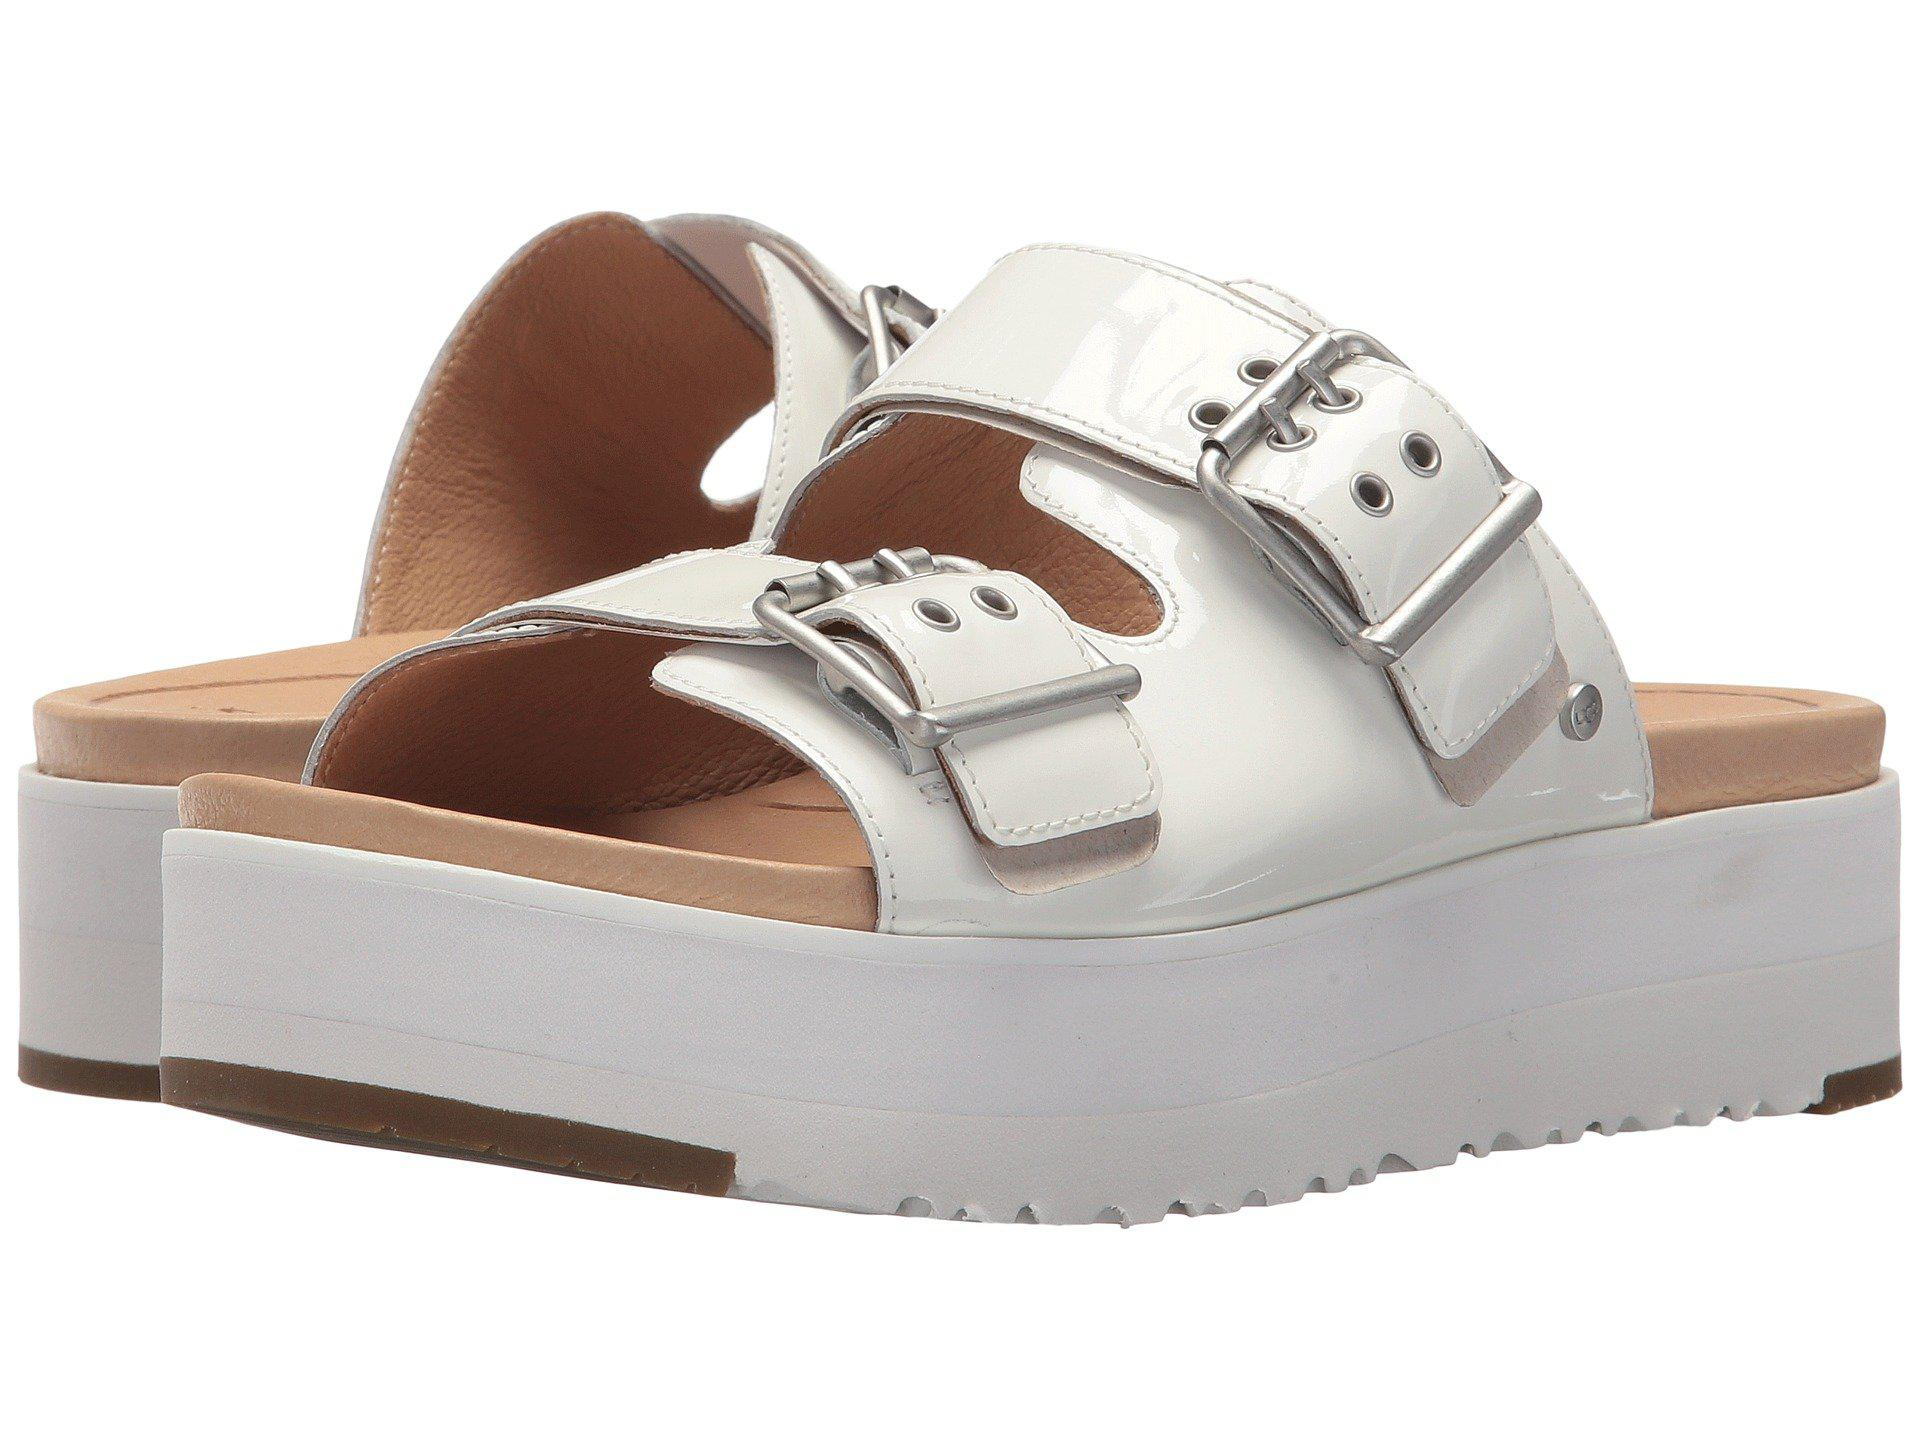 ed2ea860352 Lyst - UGG Cammie in White - Save 6%